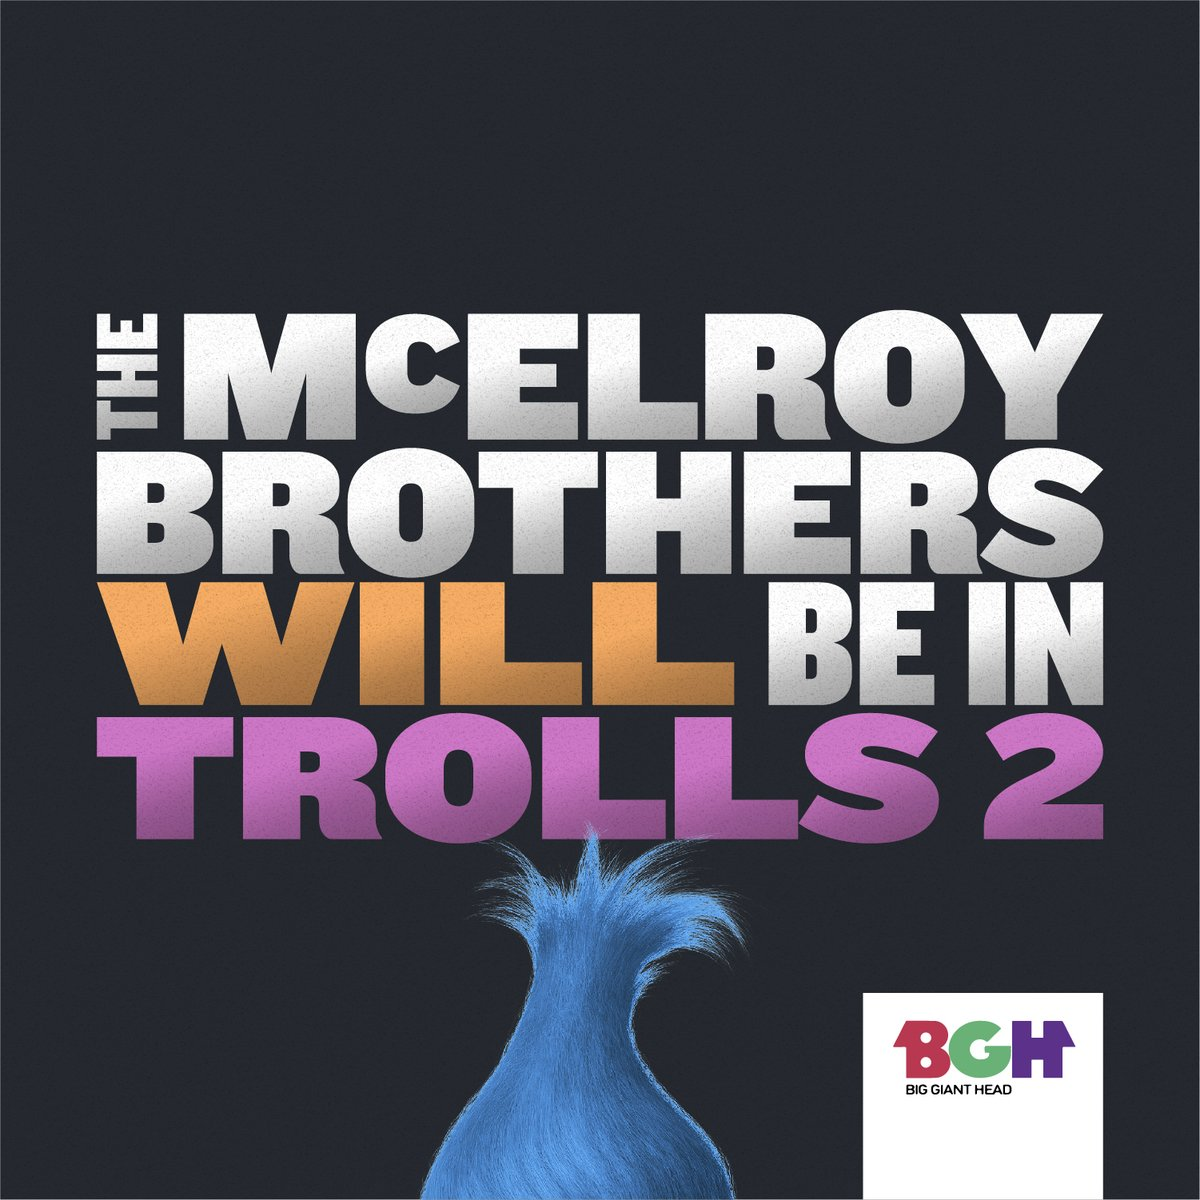 The McElroy Brothers Will Be In Trolls 2Chapter 4(March 8th, 2018) - In this chapter, The McElroy Brothers ask actor, comedian, podcaster and voice over artist Janet Varney to help get them into Trolls 2.